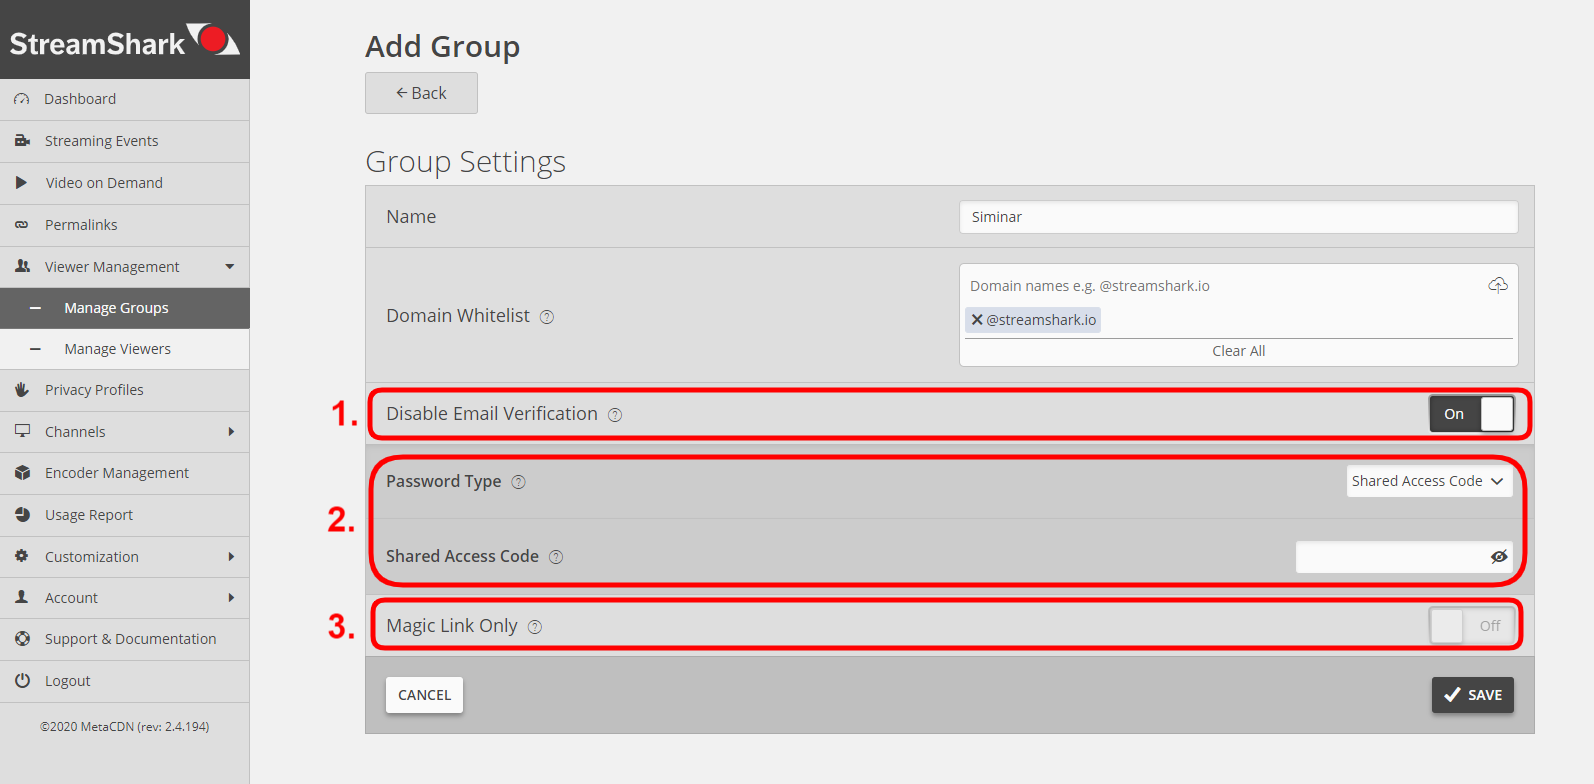 add-group-settings.png